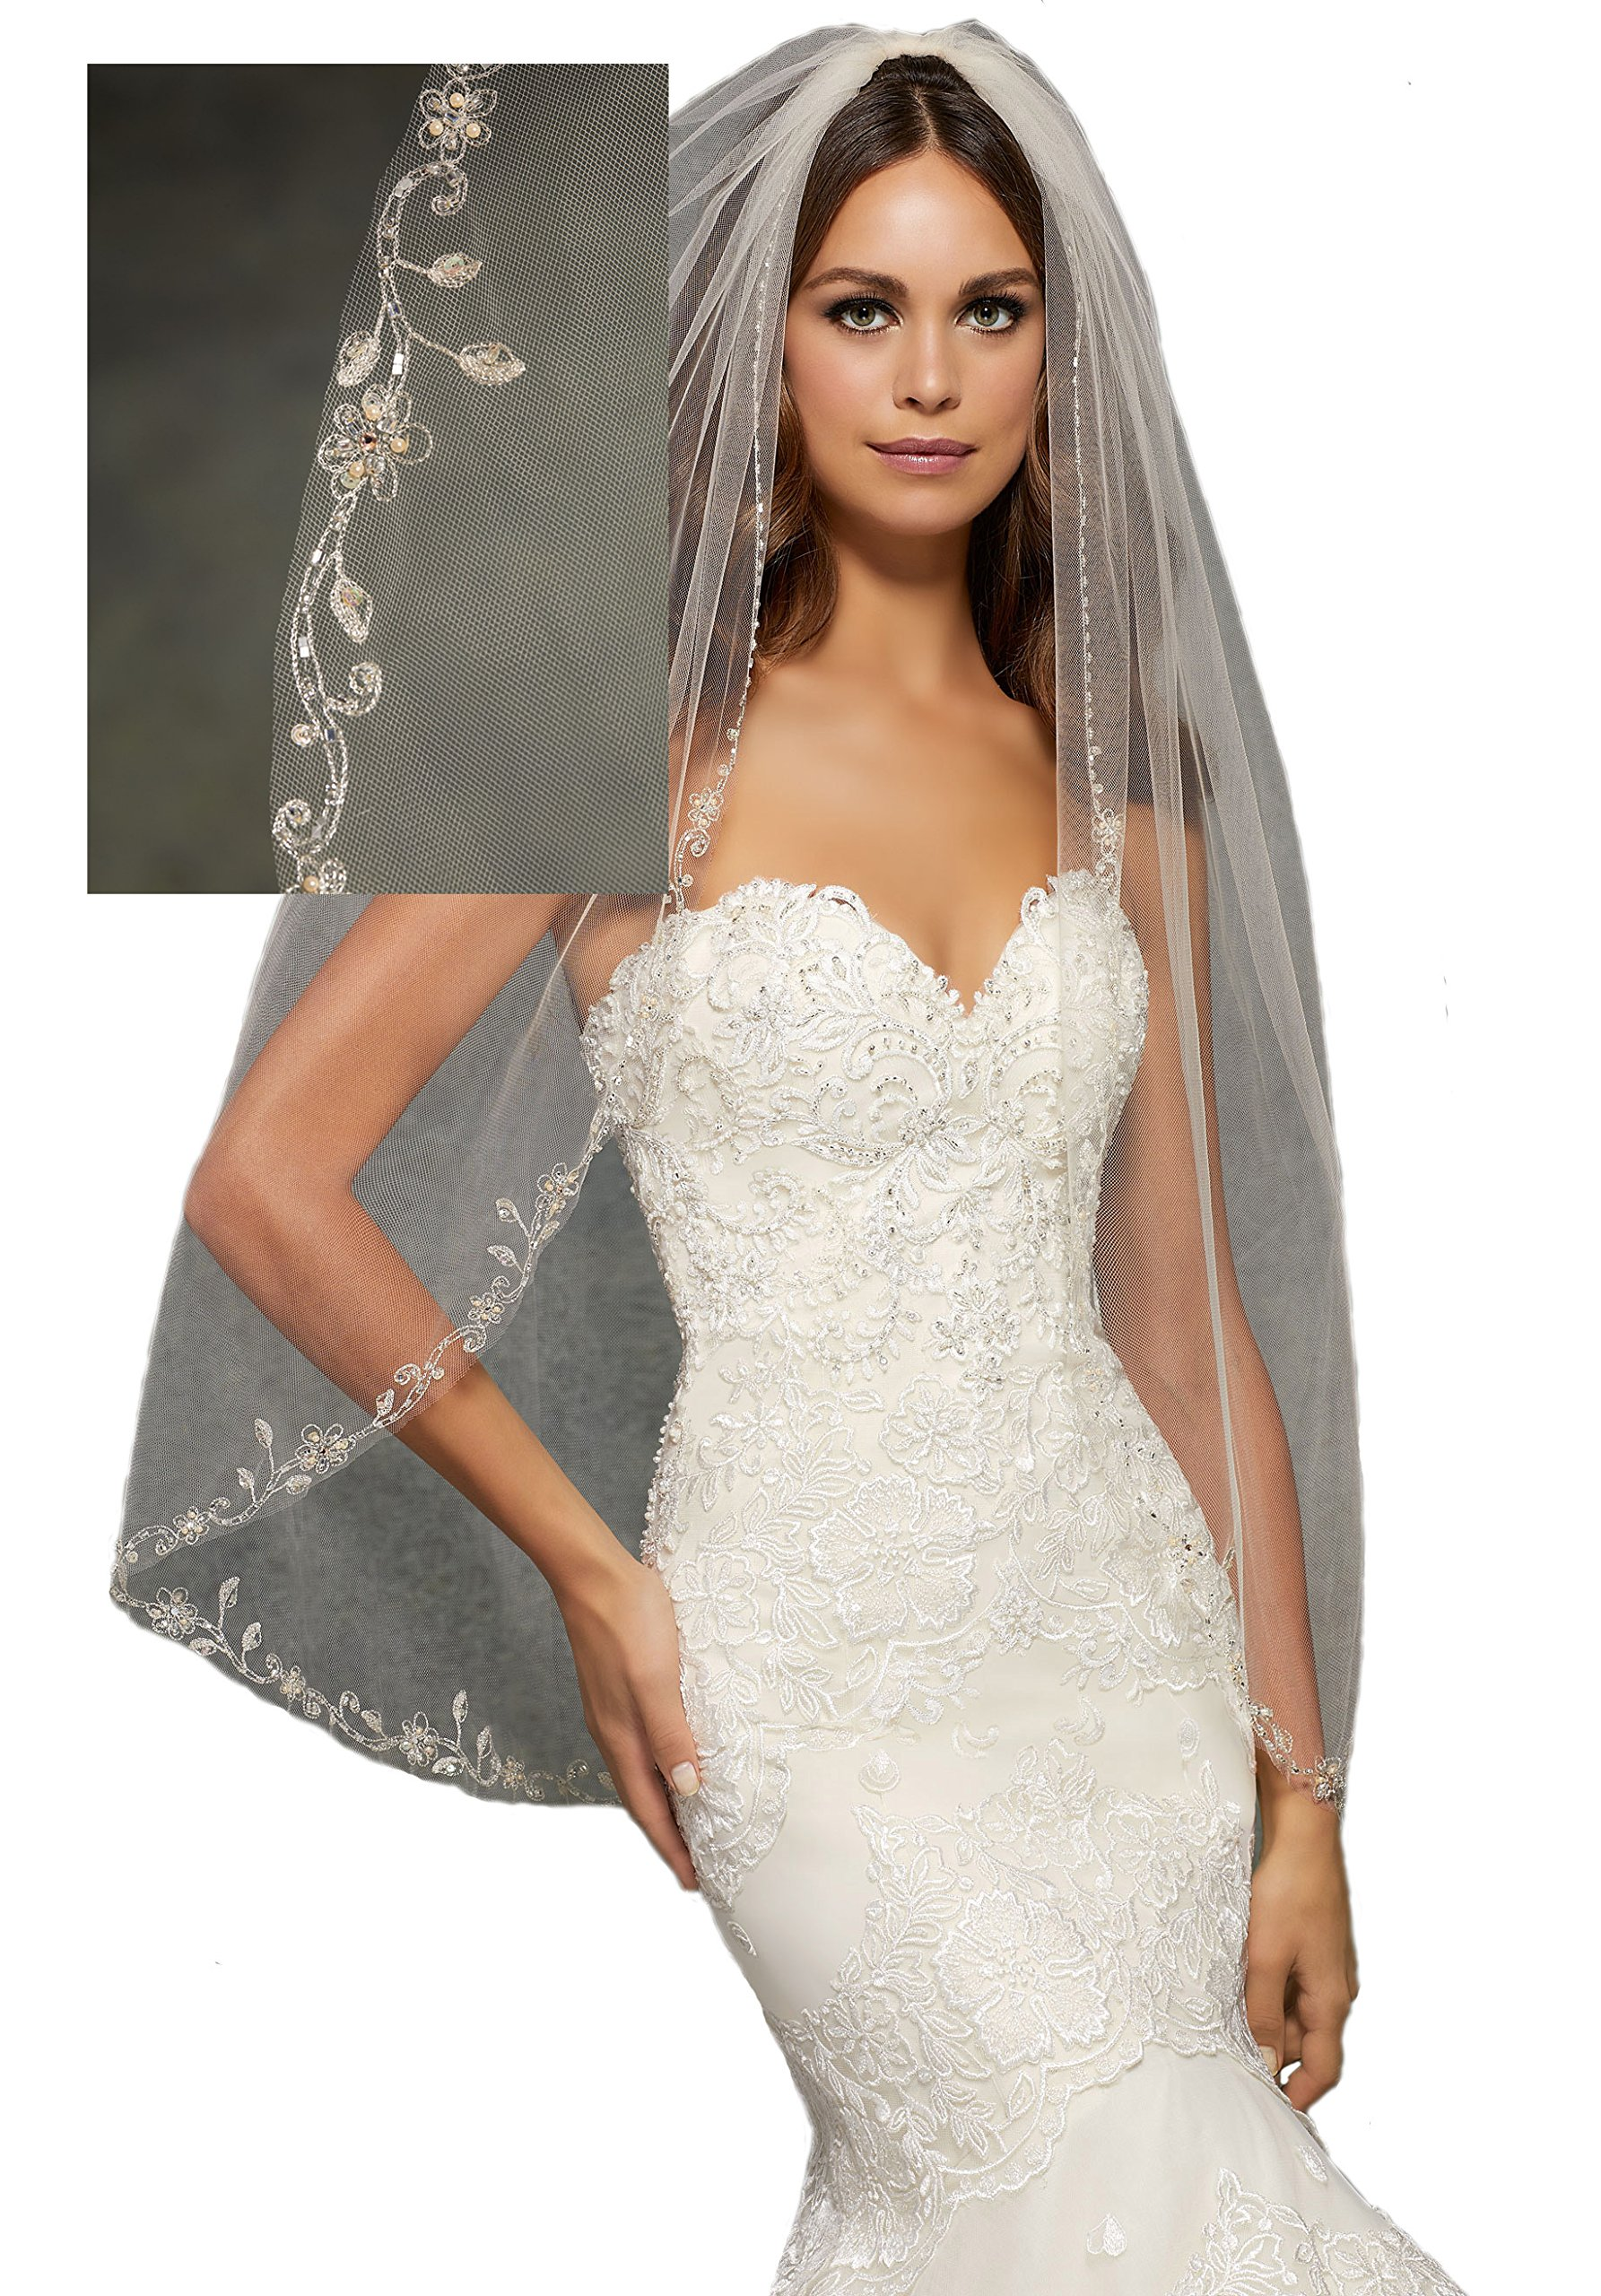 Passat Pale Ivory Single-Tier 36'' Fingertip Length Wedding Bridal Veil with Embroidery Edge, Beaded with Pearls and Rhinestones VL1056